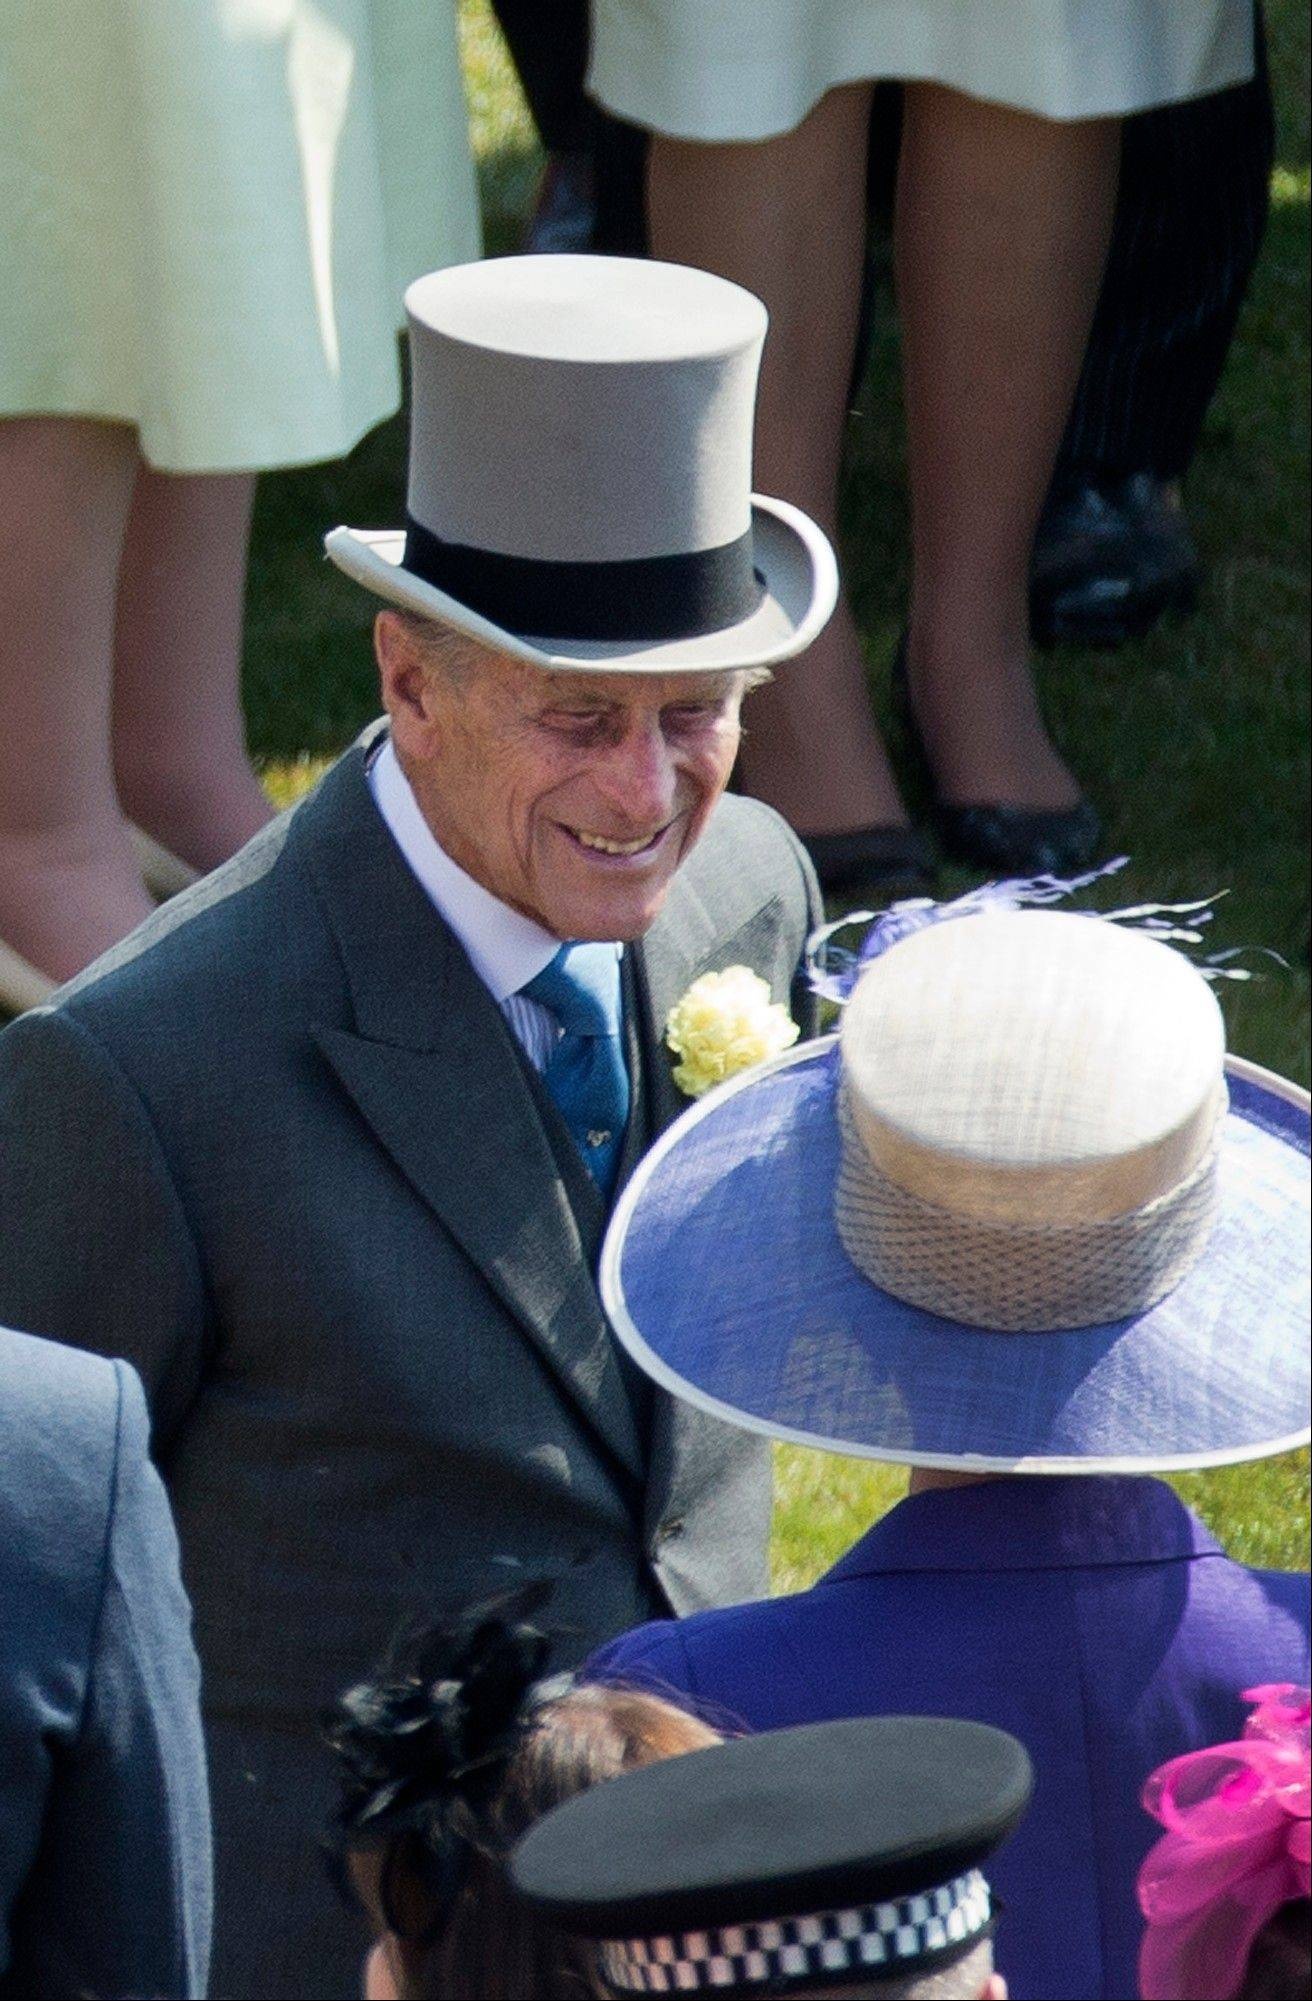 Prince Philip, the husband of Britain�s Queen Elizabeth II attends a garden party at Buckingham Palace in London Thursday. Buckingham Palace says Queen Elizabeth II�s husband was later admitted to a London hospital for an exploratory operation. The palace said the operation on 91-year-old Prince Philip will come after �abdominal investigations,� but did not elaborate.